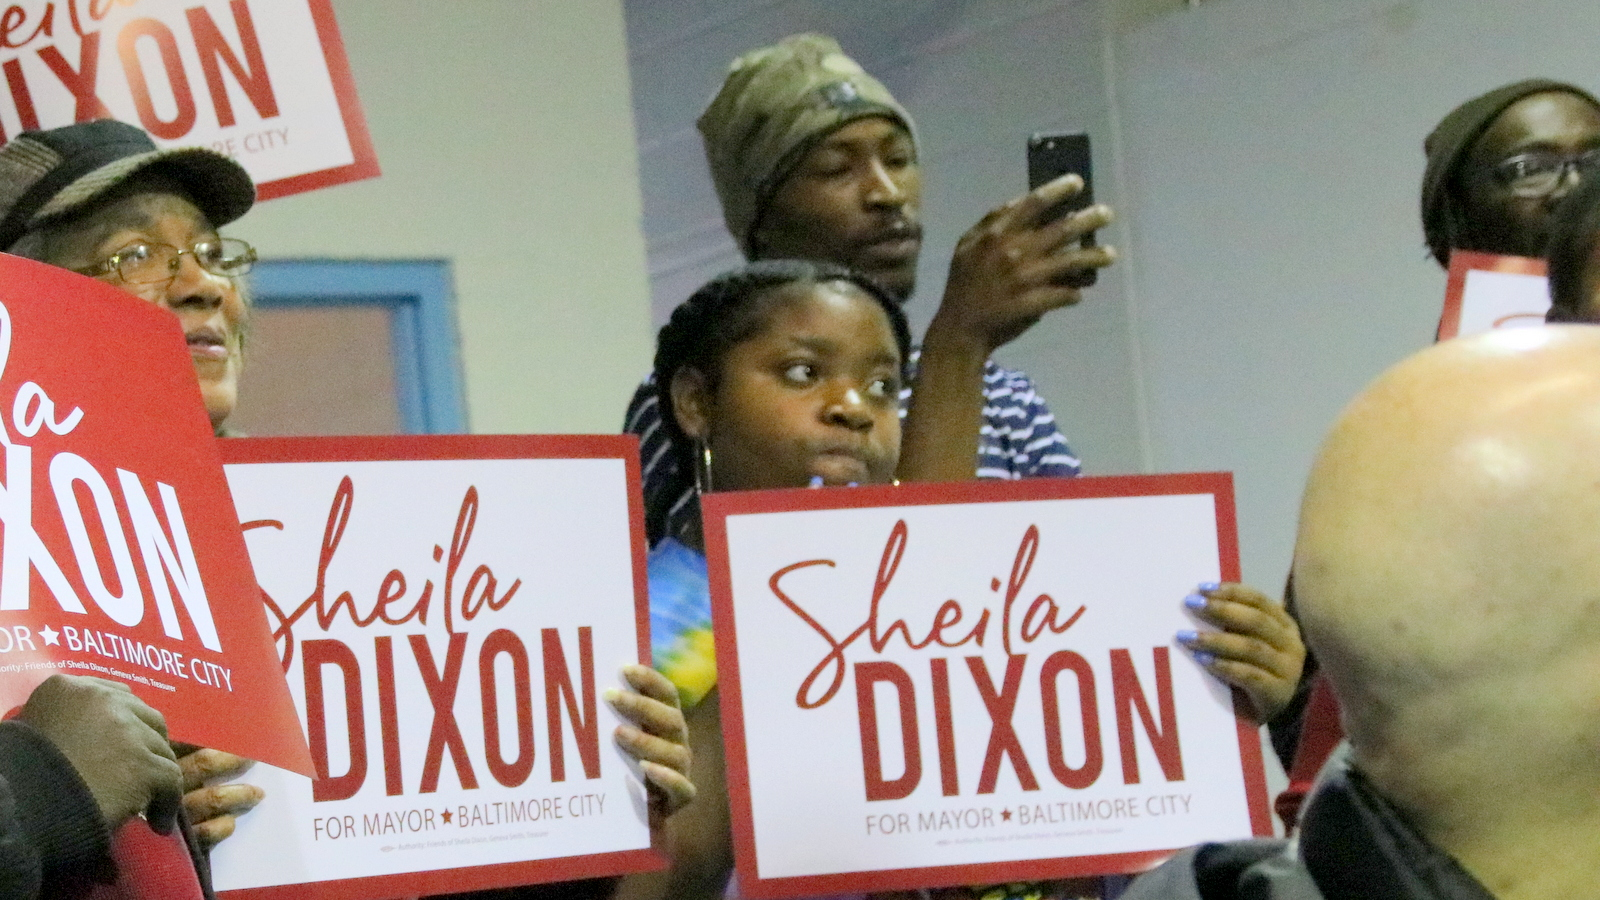 Dixon volunteer Michael Moore (holding phone) at her December 14, 2019 campaign kick-off. (Fern Shen)